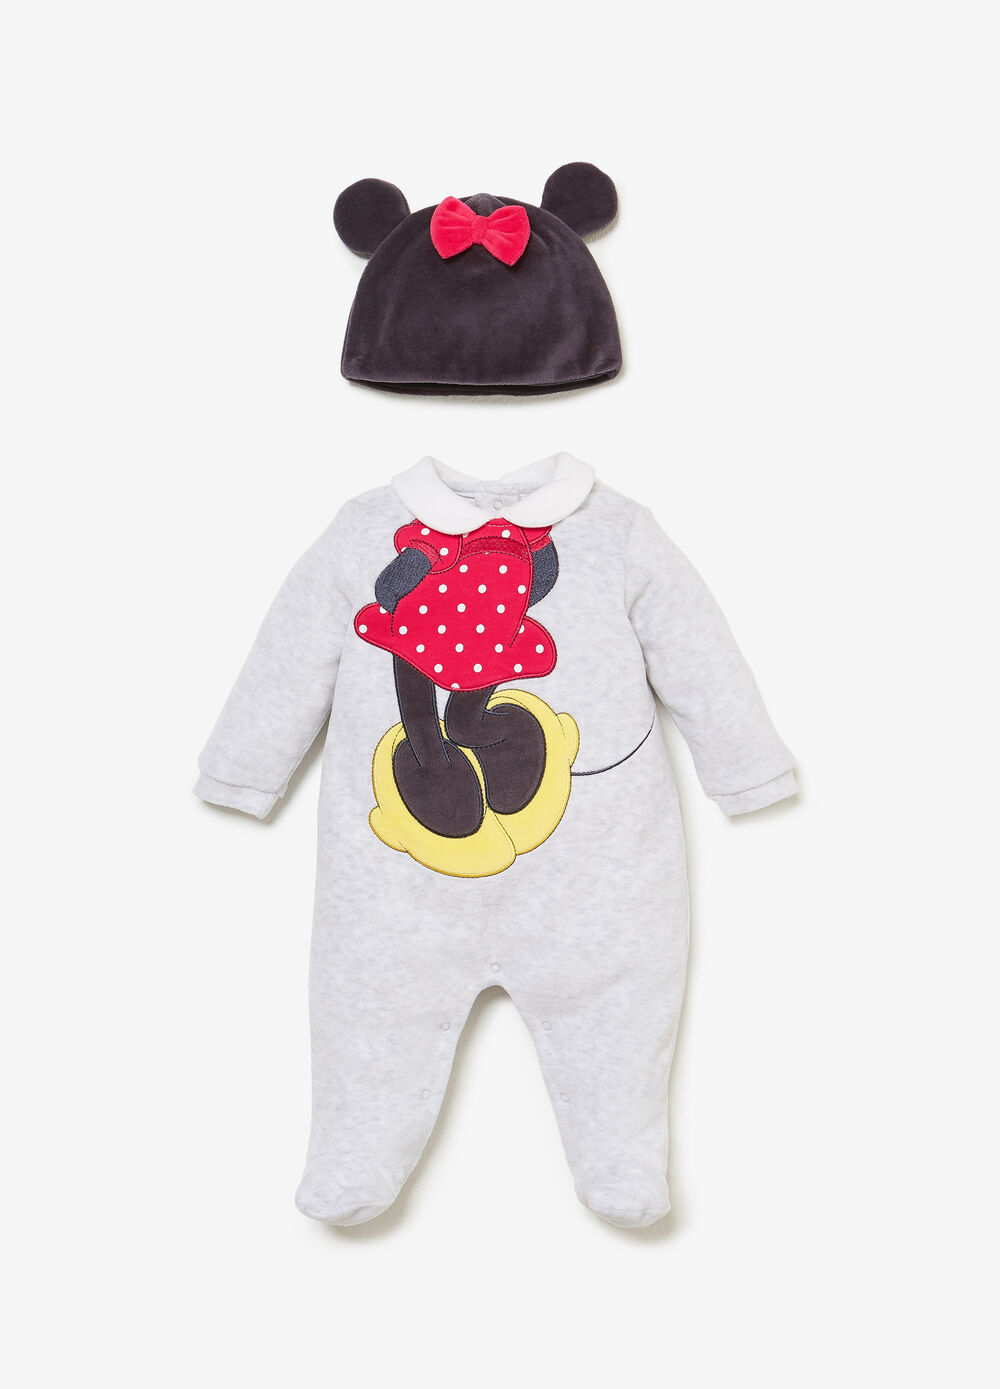 Minnie Mouse onesie and hat outfit